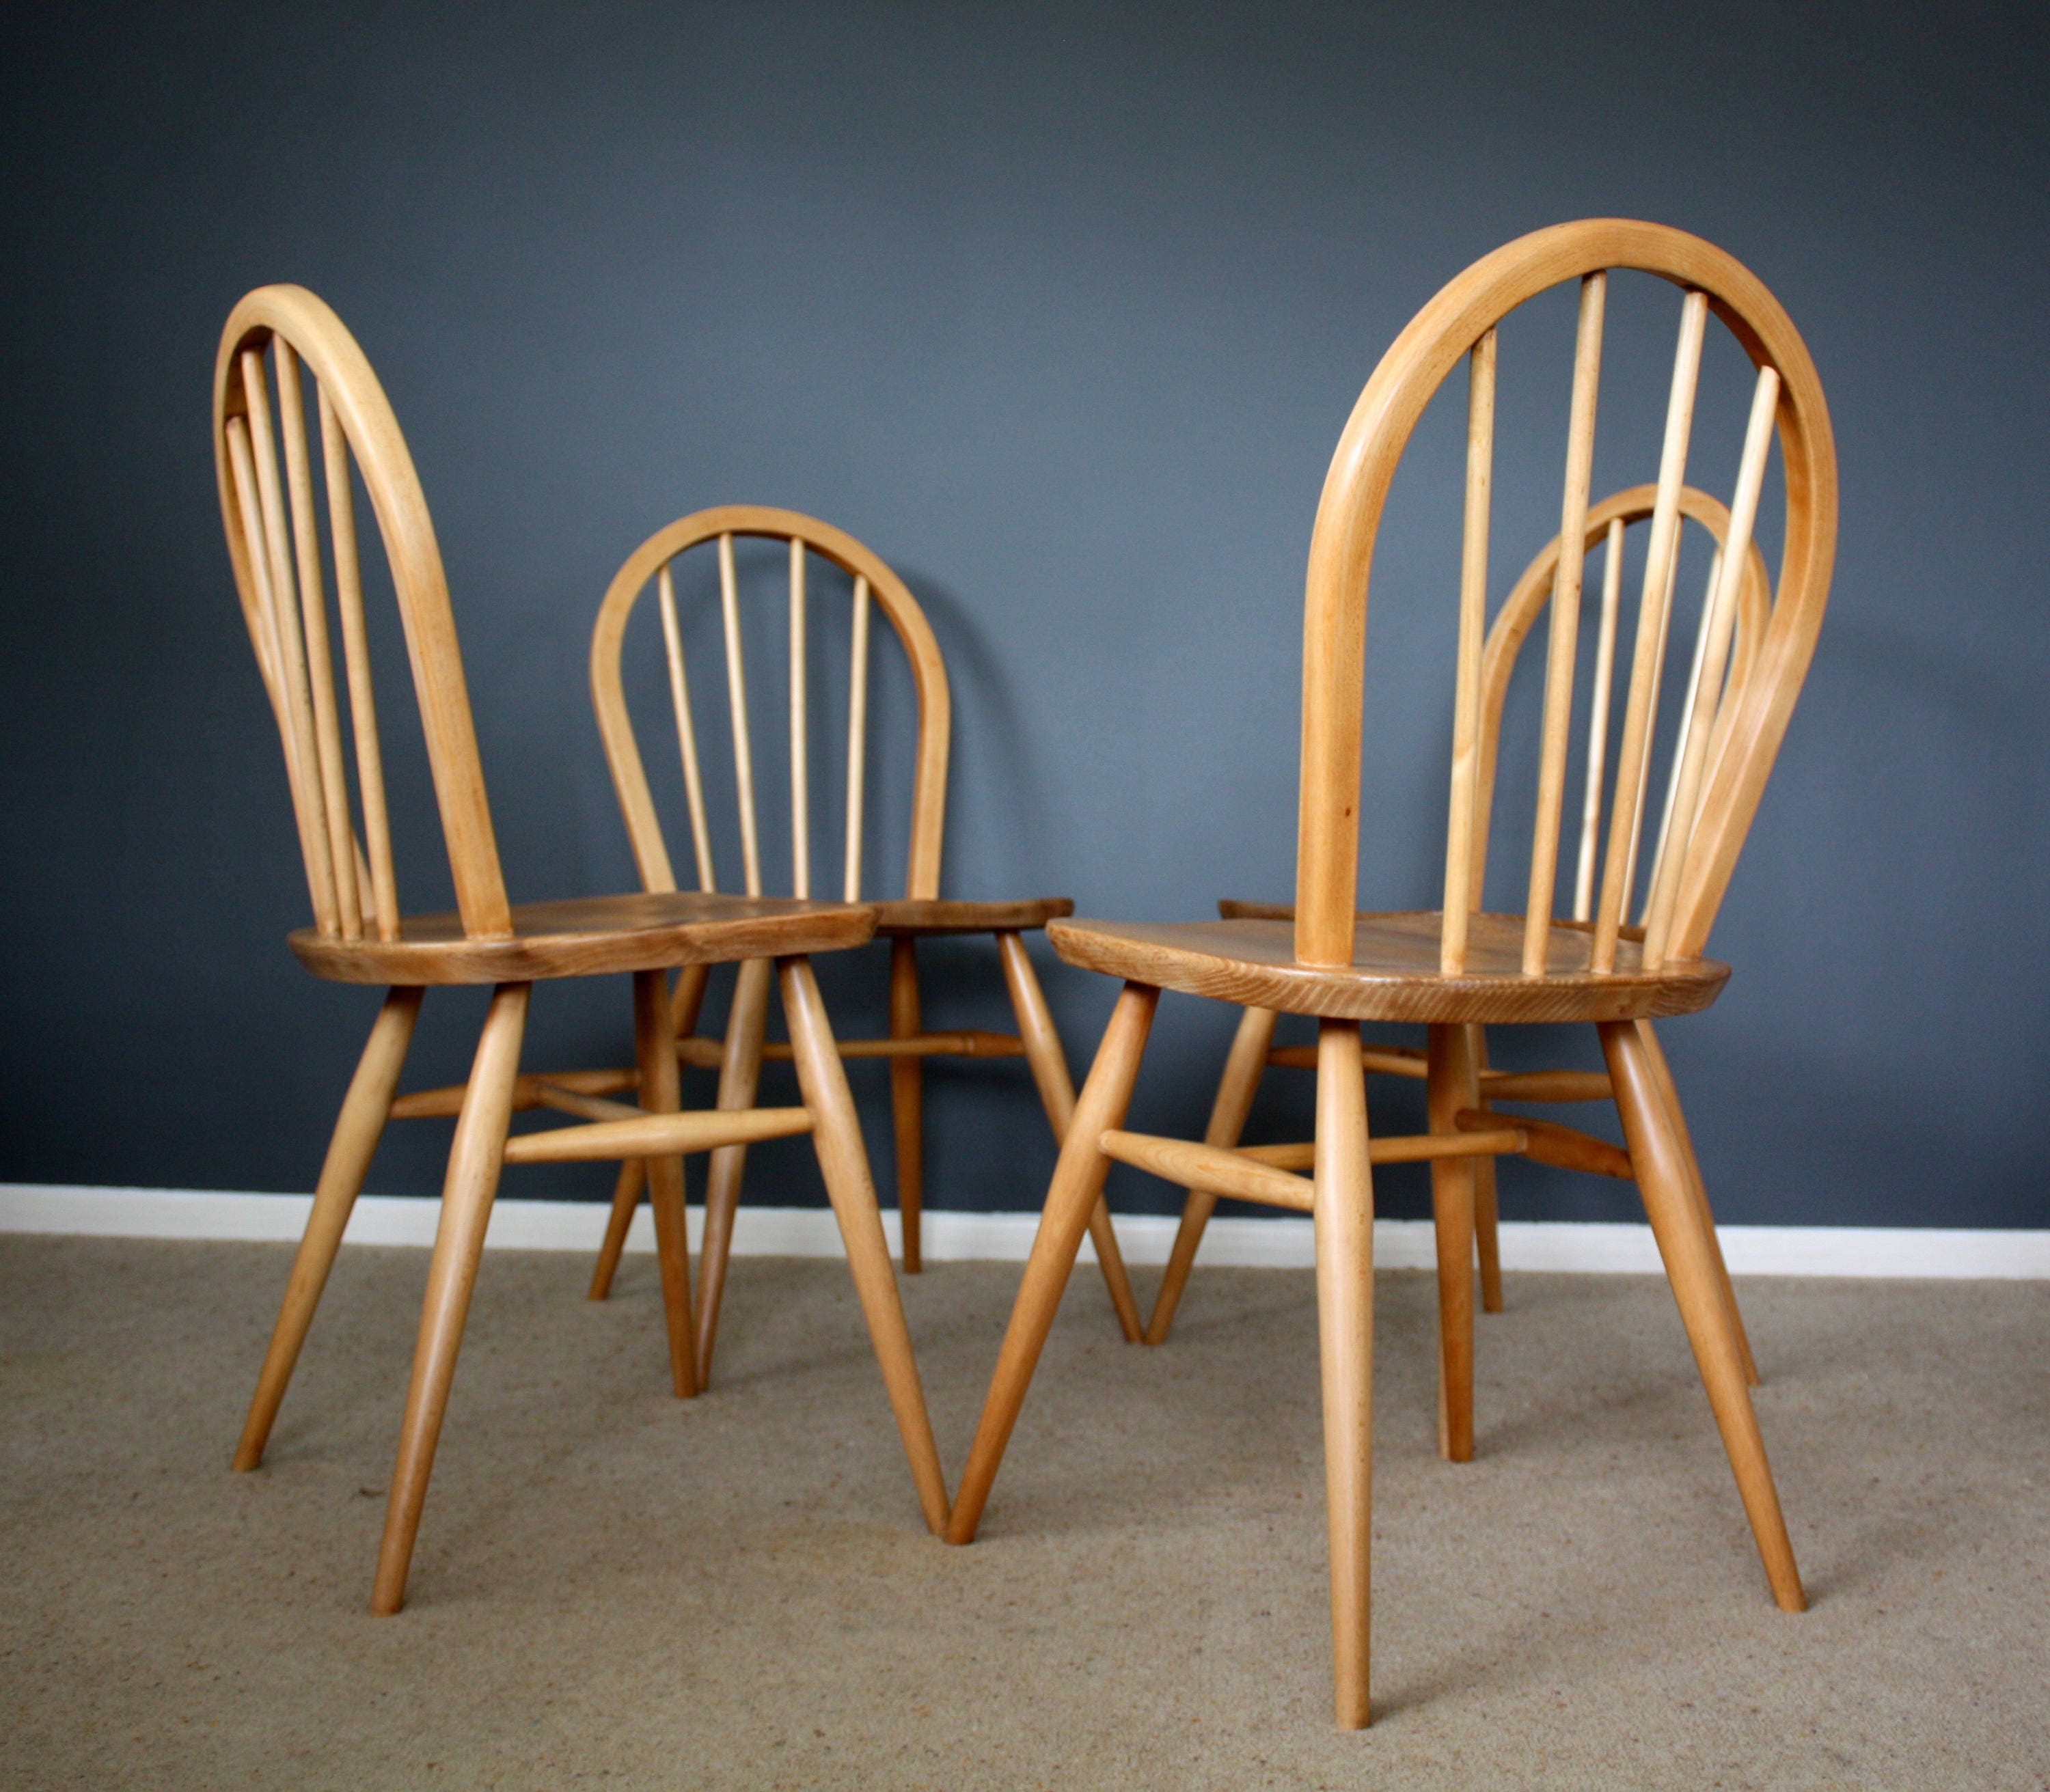 Stunning Vintage Ercol Windsor Dining Chairs Retro Mid century 50s 60s 70s